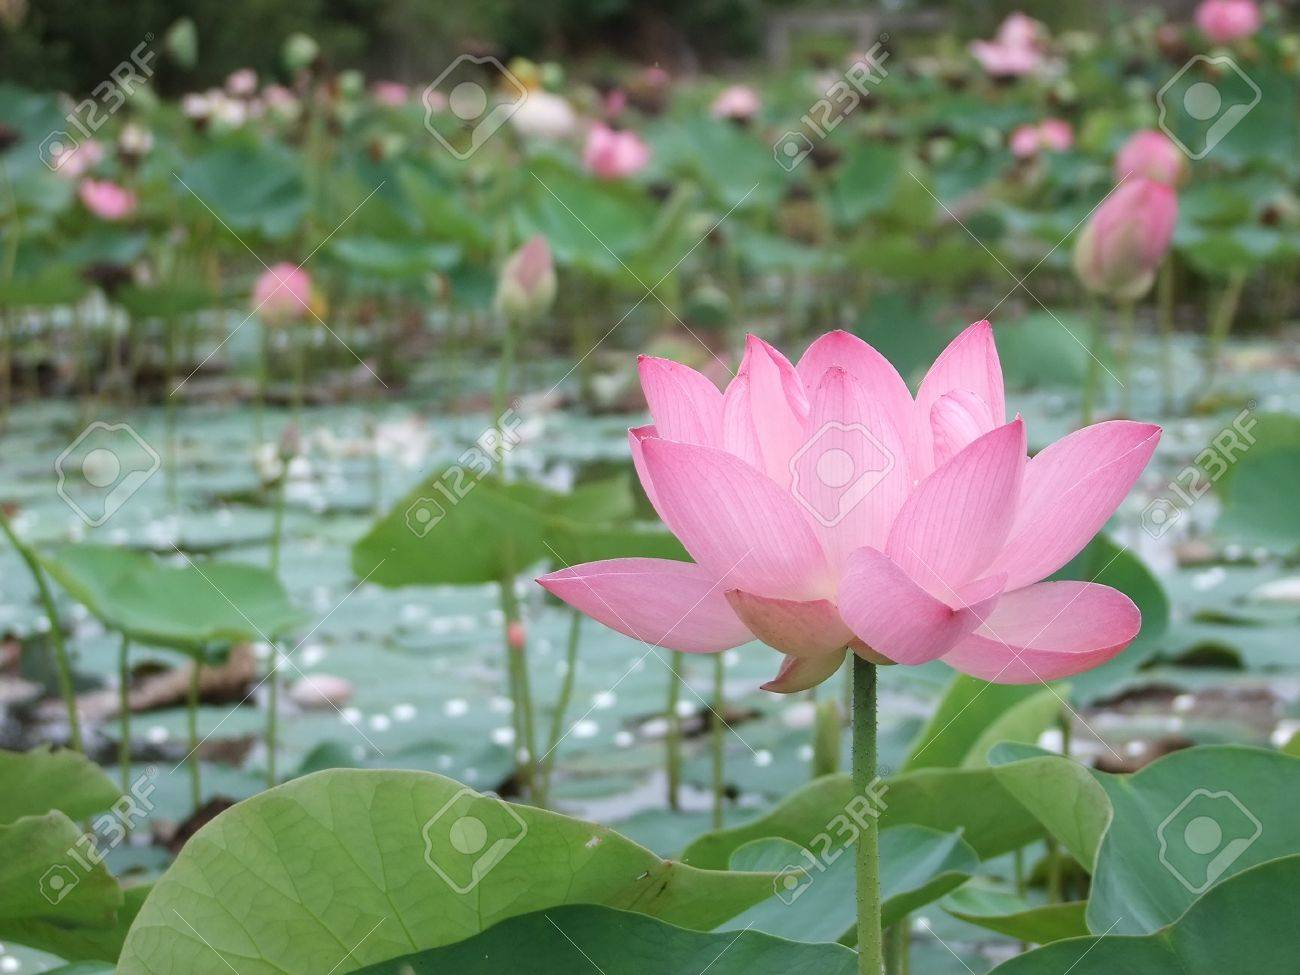 Pink blossom lotus flower in thailand stock photo picture and pink blossom lotus flower in thailand stock photo 13216548 mightylinksfo